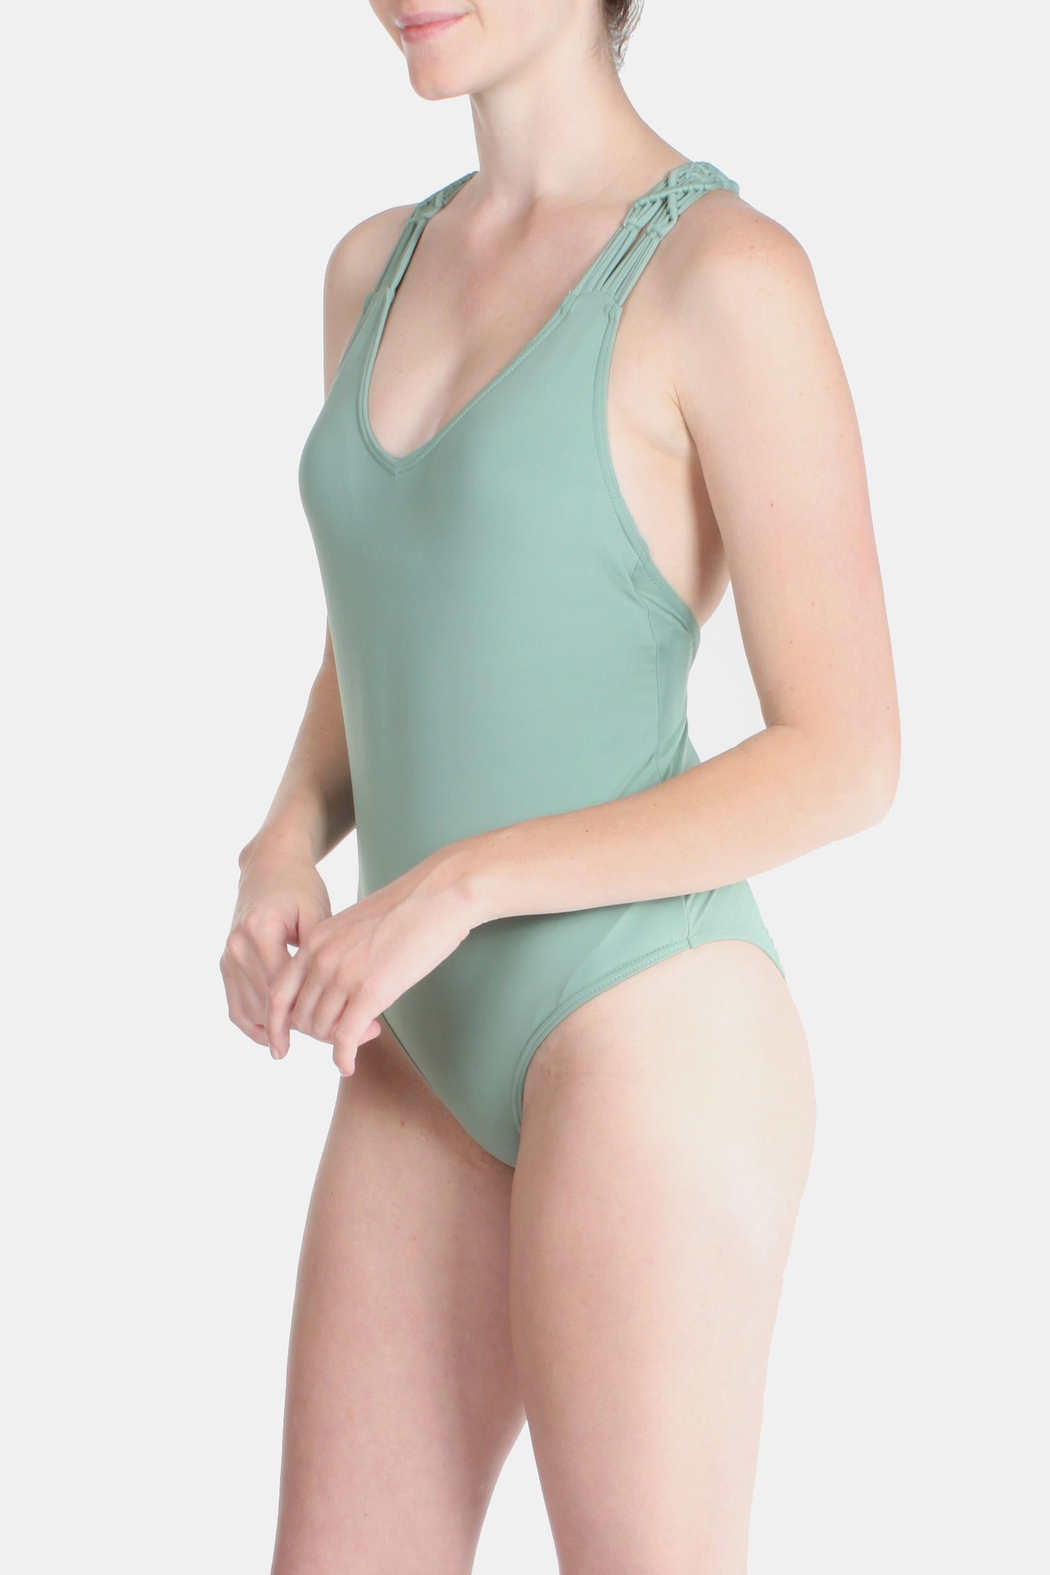 81c85e6b0f Enya Sage Braided Swimsuit from Los Angeles by Goldie's — Shoptiques